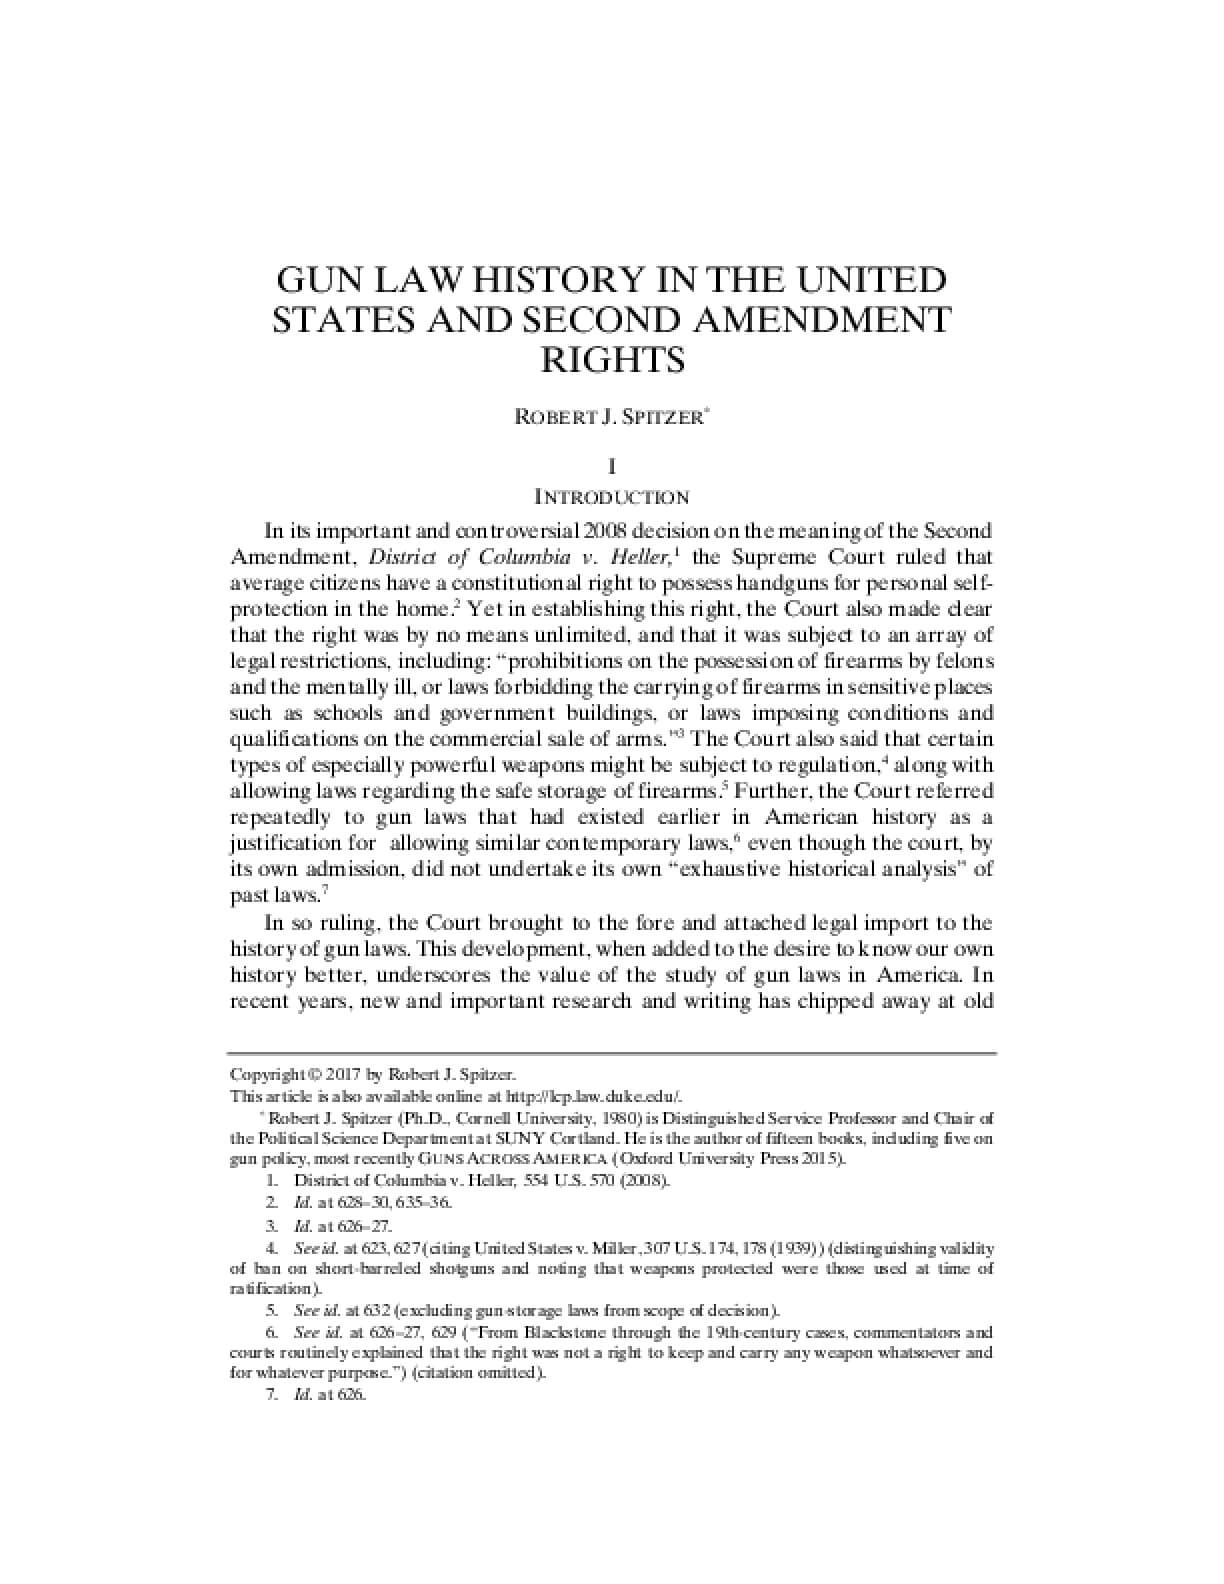 Gun Law History in the United States and Second Amendment Rights